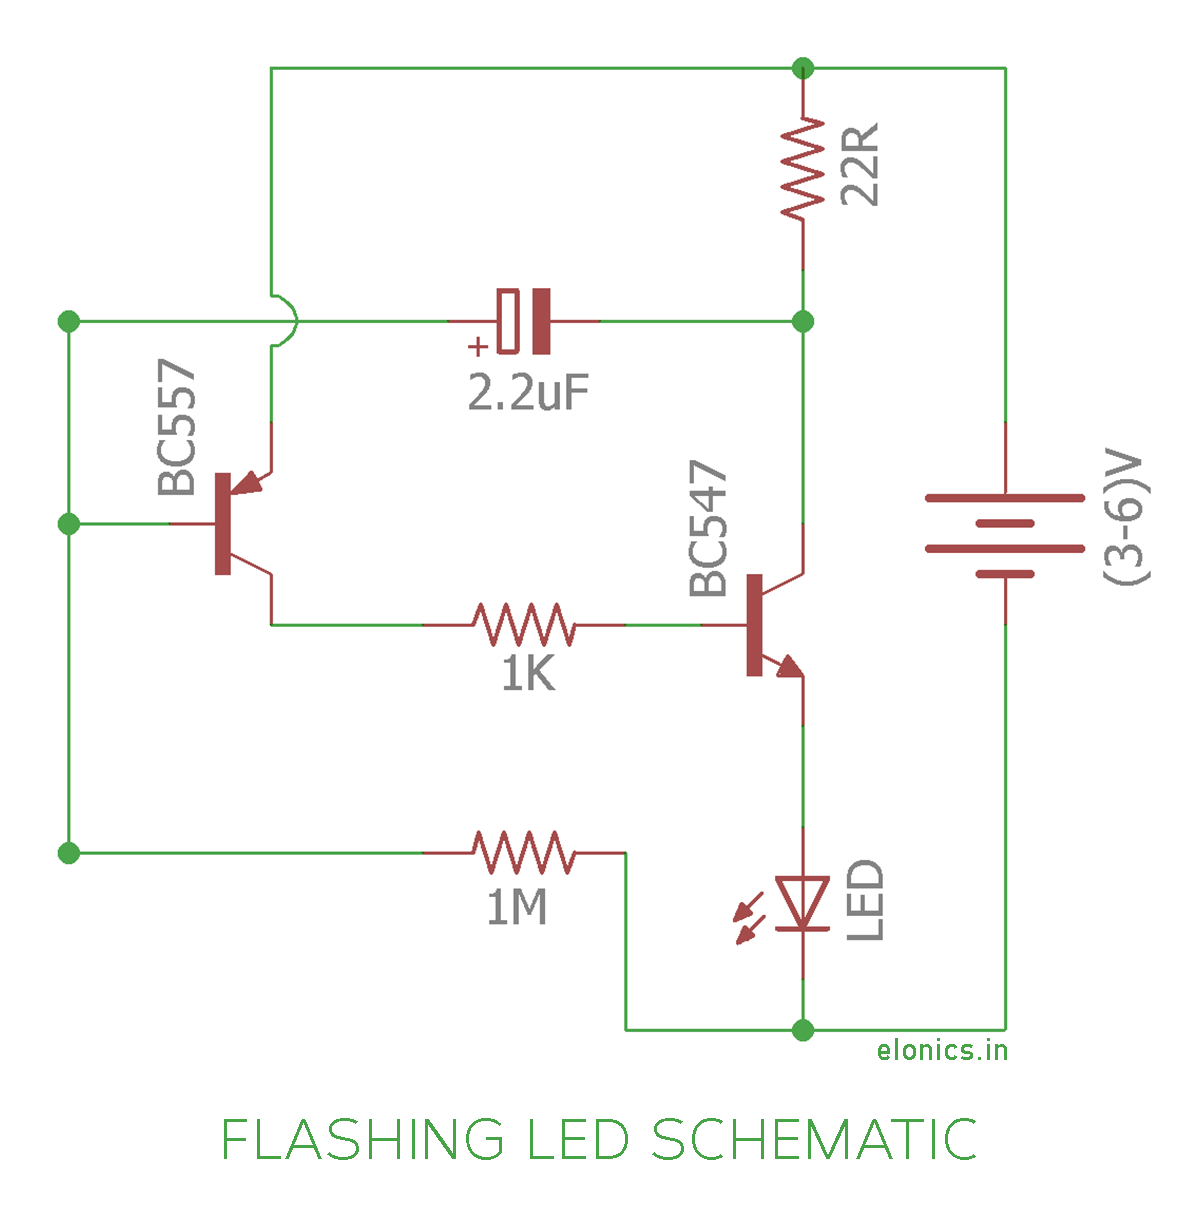 Simple Flashing LED Circuit using transistors - Elonics